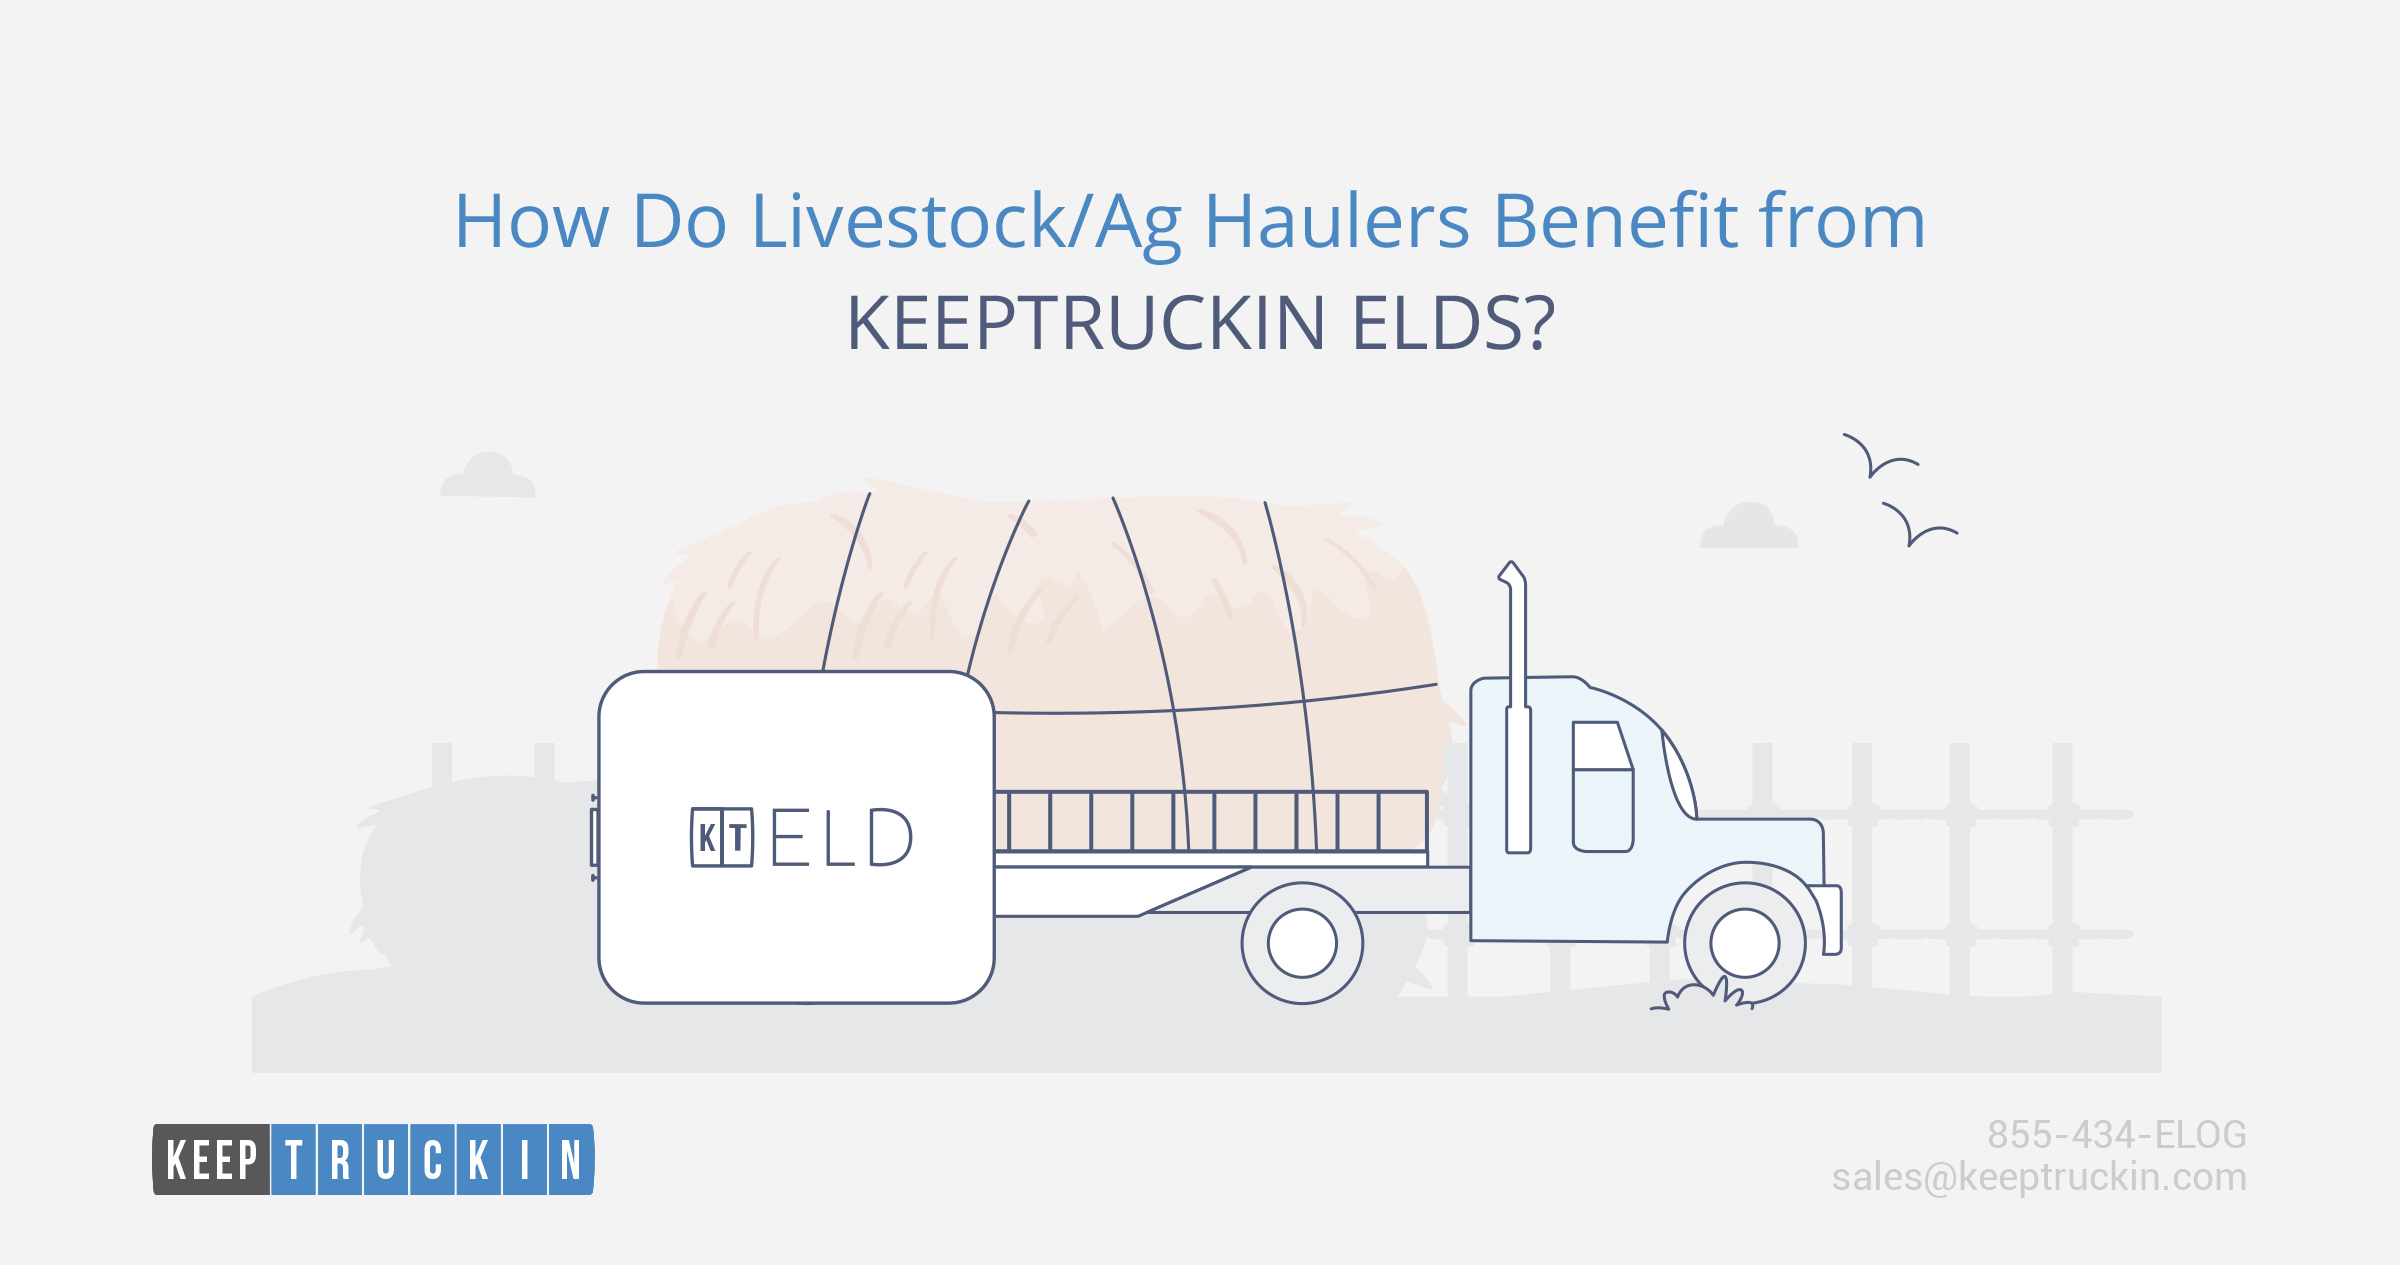 How do livestock/ag haulers benefit from the KeepTruckin ELD?